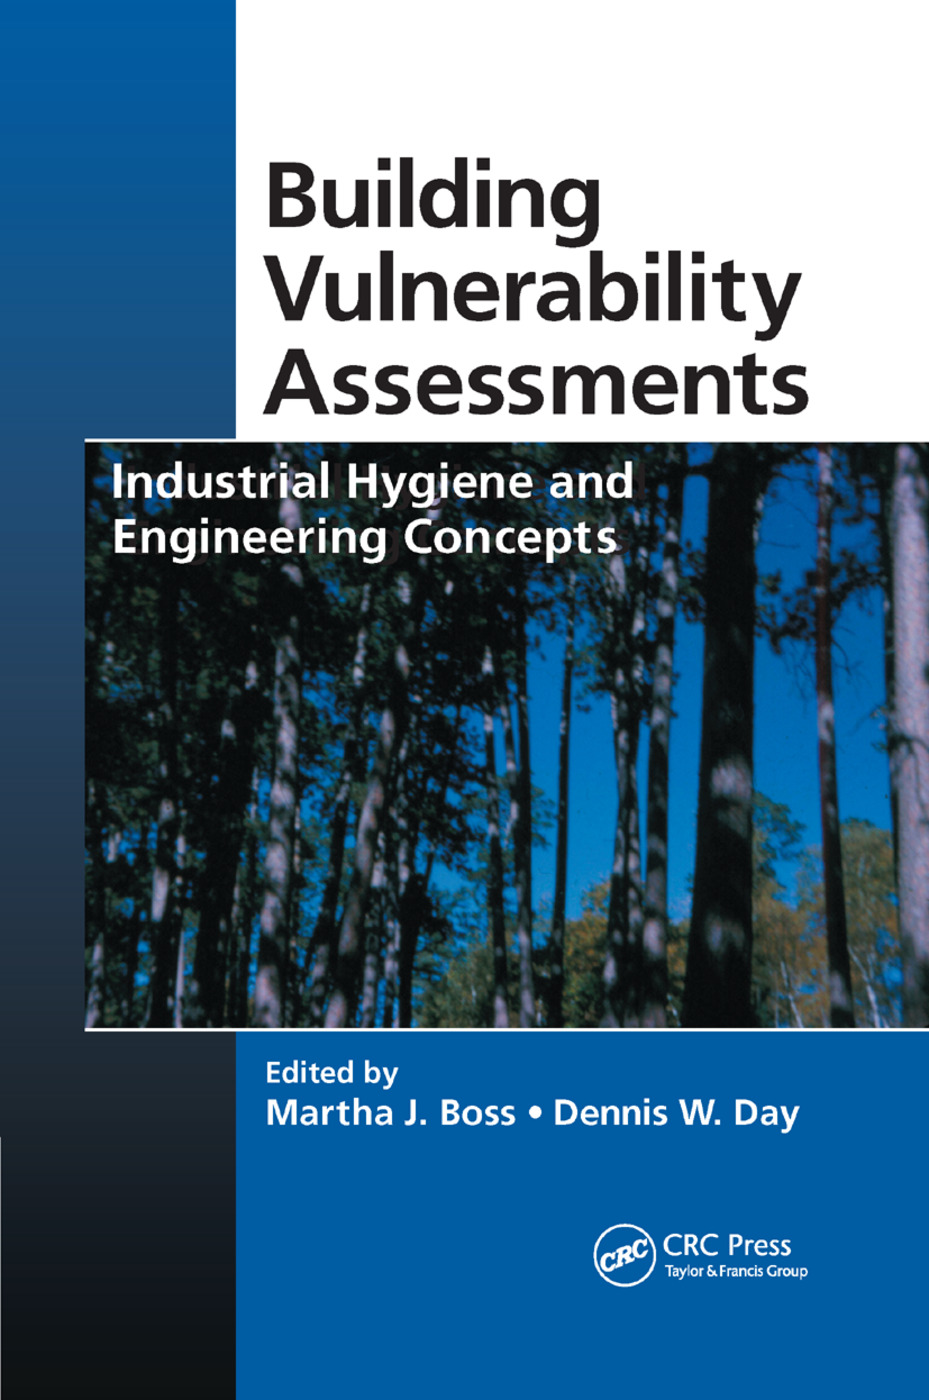 Building Vulnerability Assessments: Industrial Hygiene and Engineering Concepts book cover